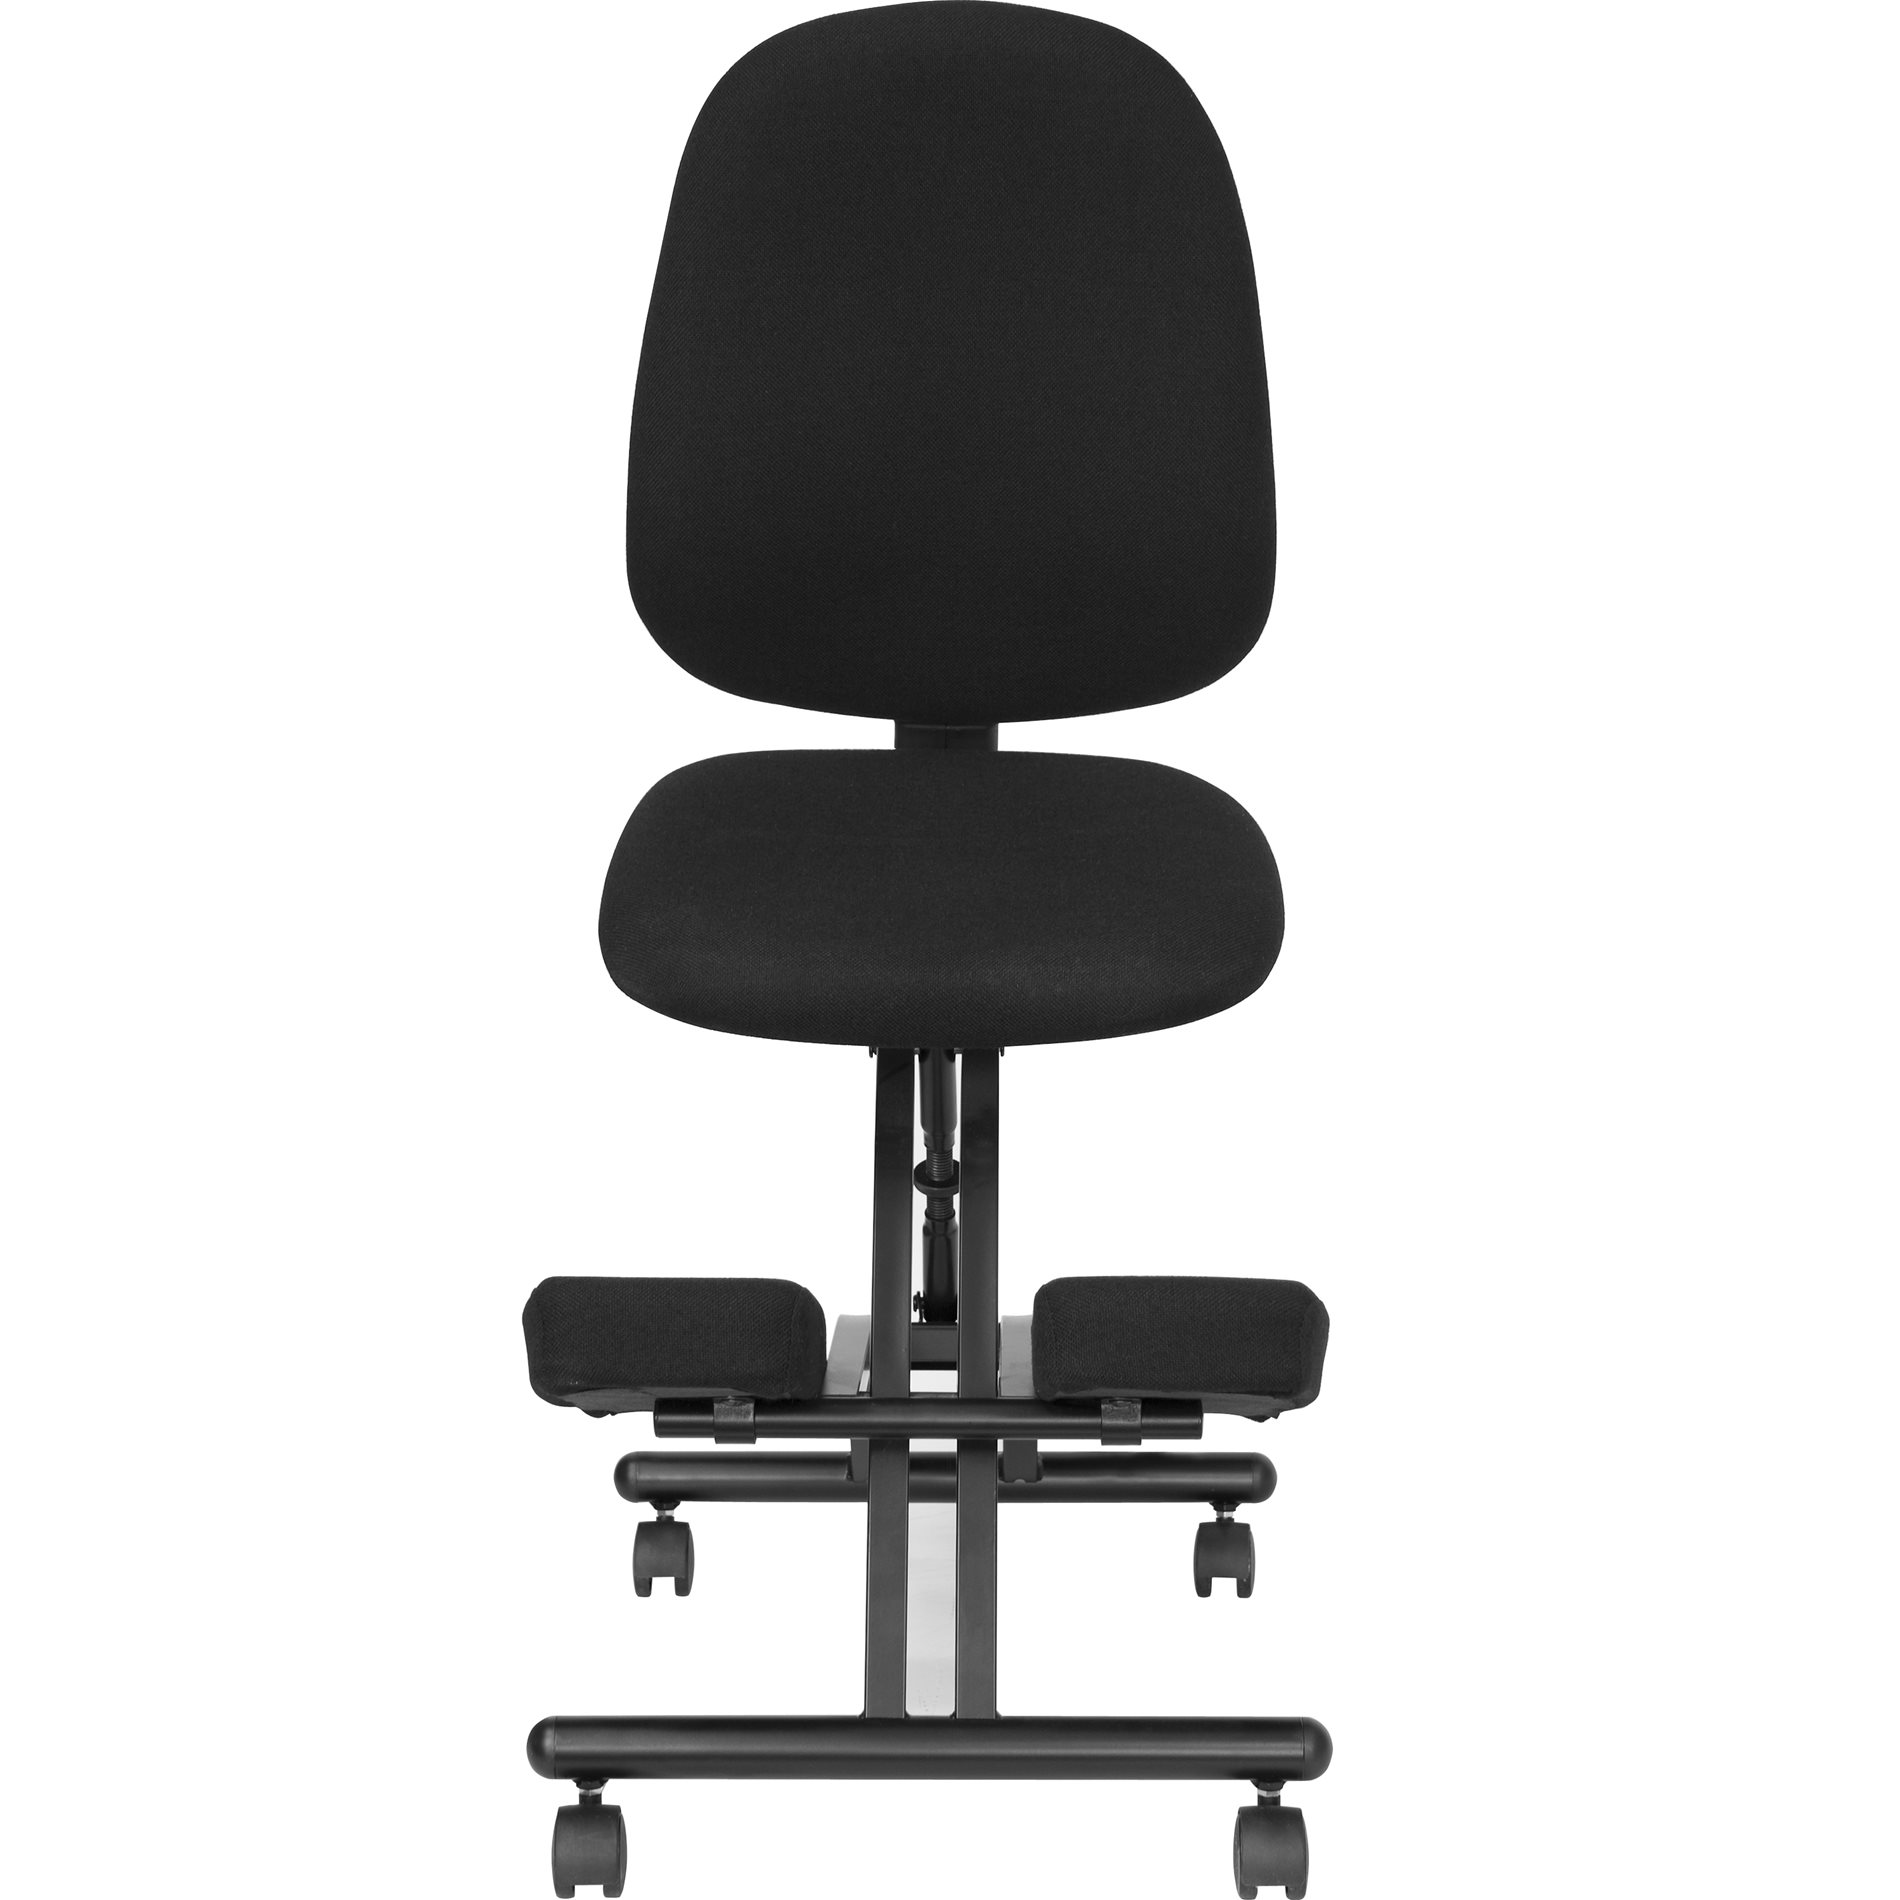 ergonomic chair knee rest crate and barrel bentwood flash furniture wl 1428 gg office chairs kneeling